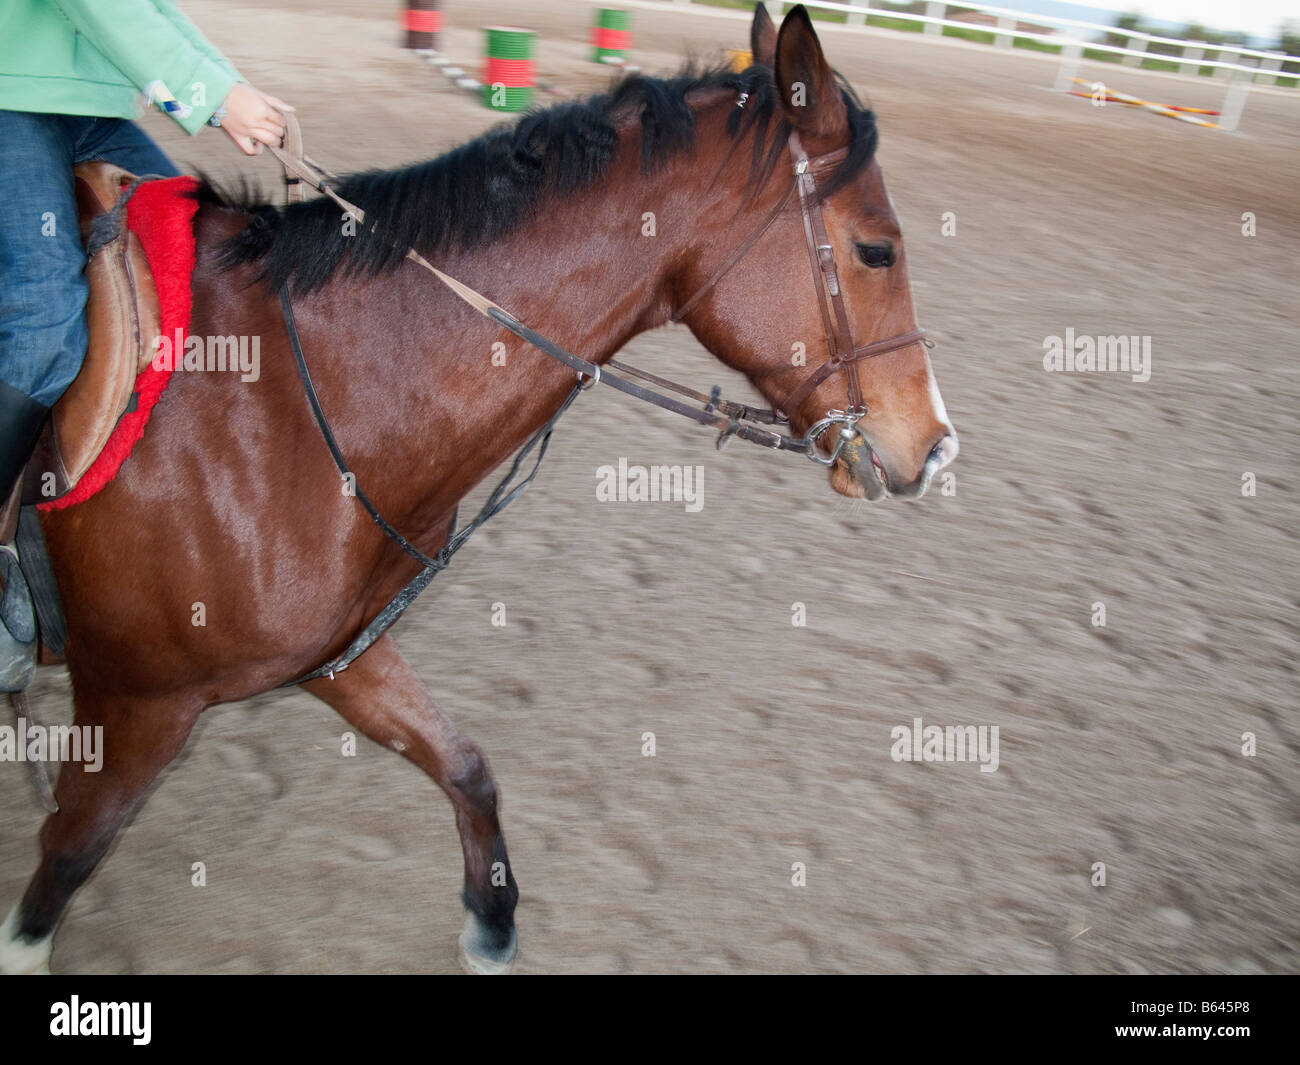 Close up of person horse riding - Stock Image